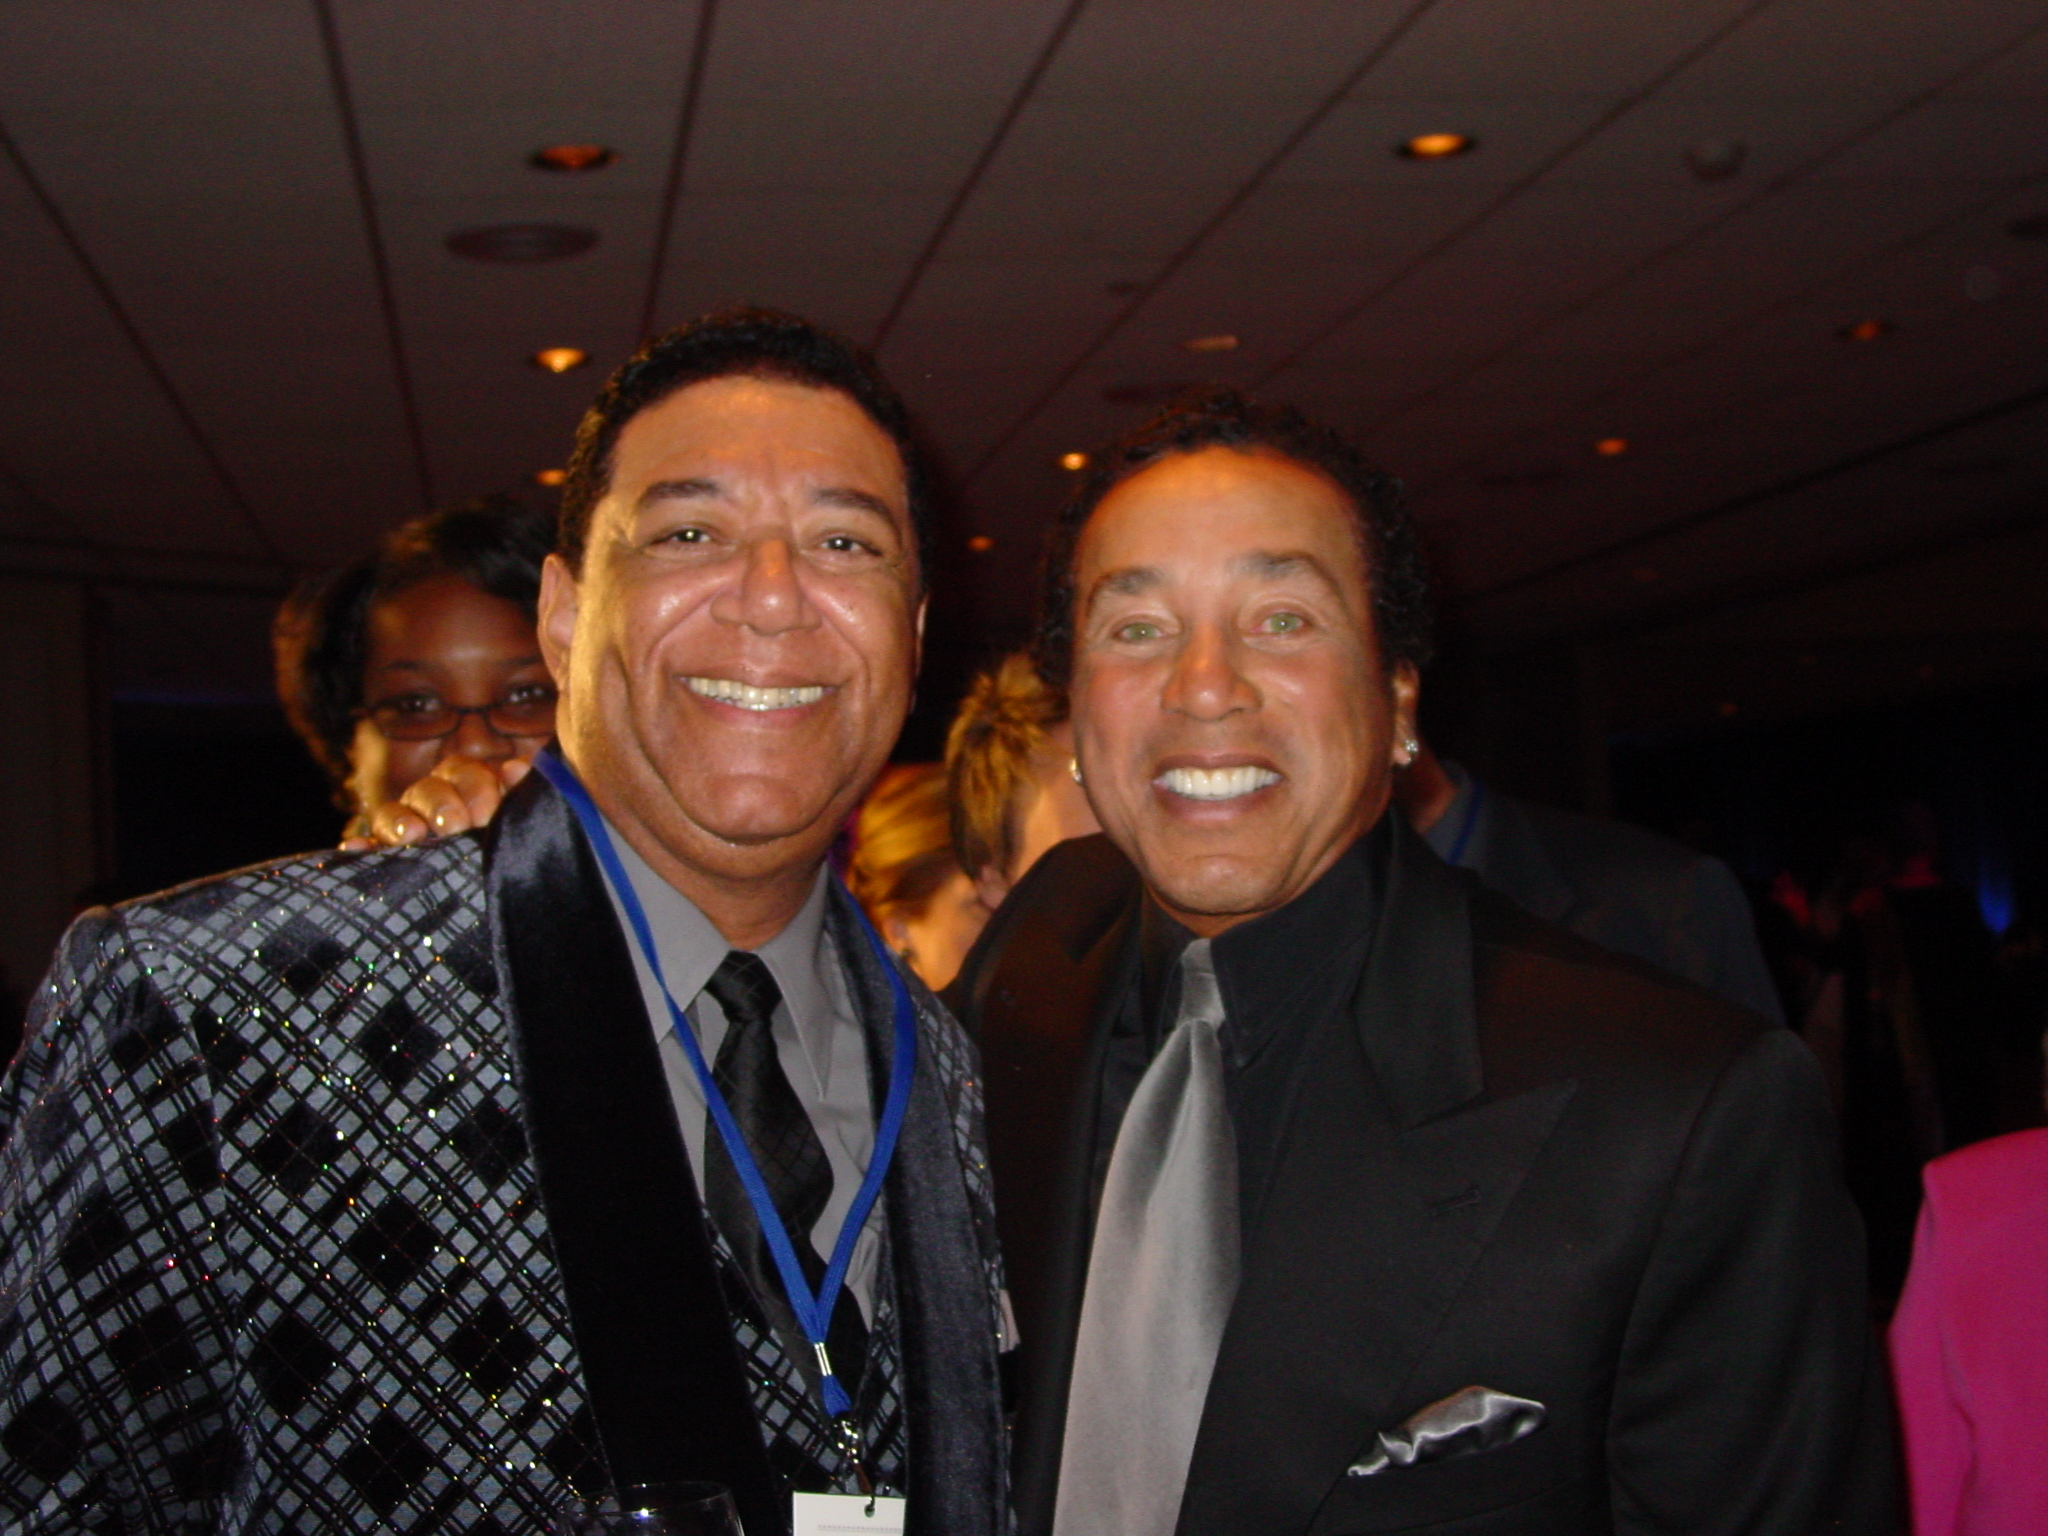 Writing partners Buzzy and Smokey at Motown Gala Night